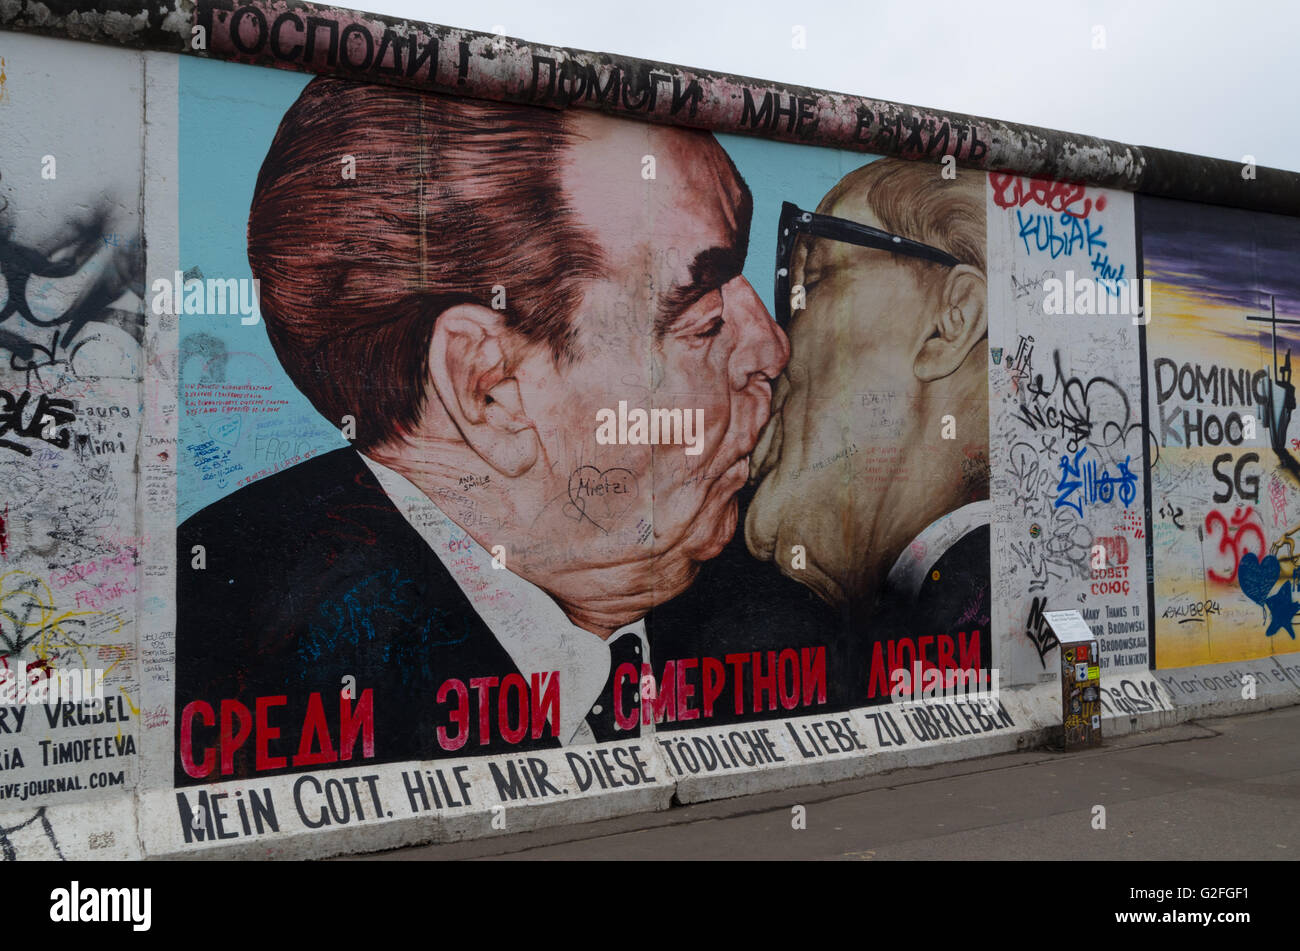 Berlin Wall Graffiti Advertisements